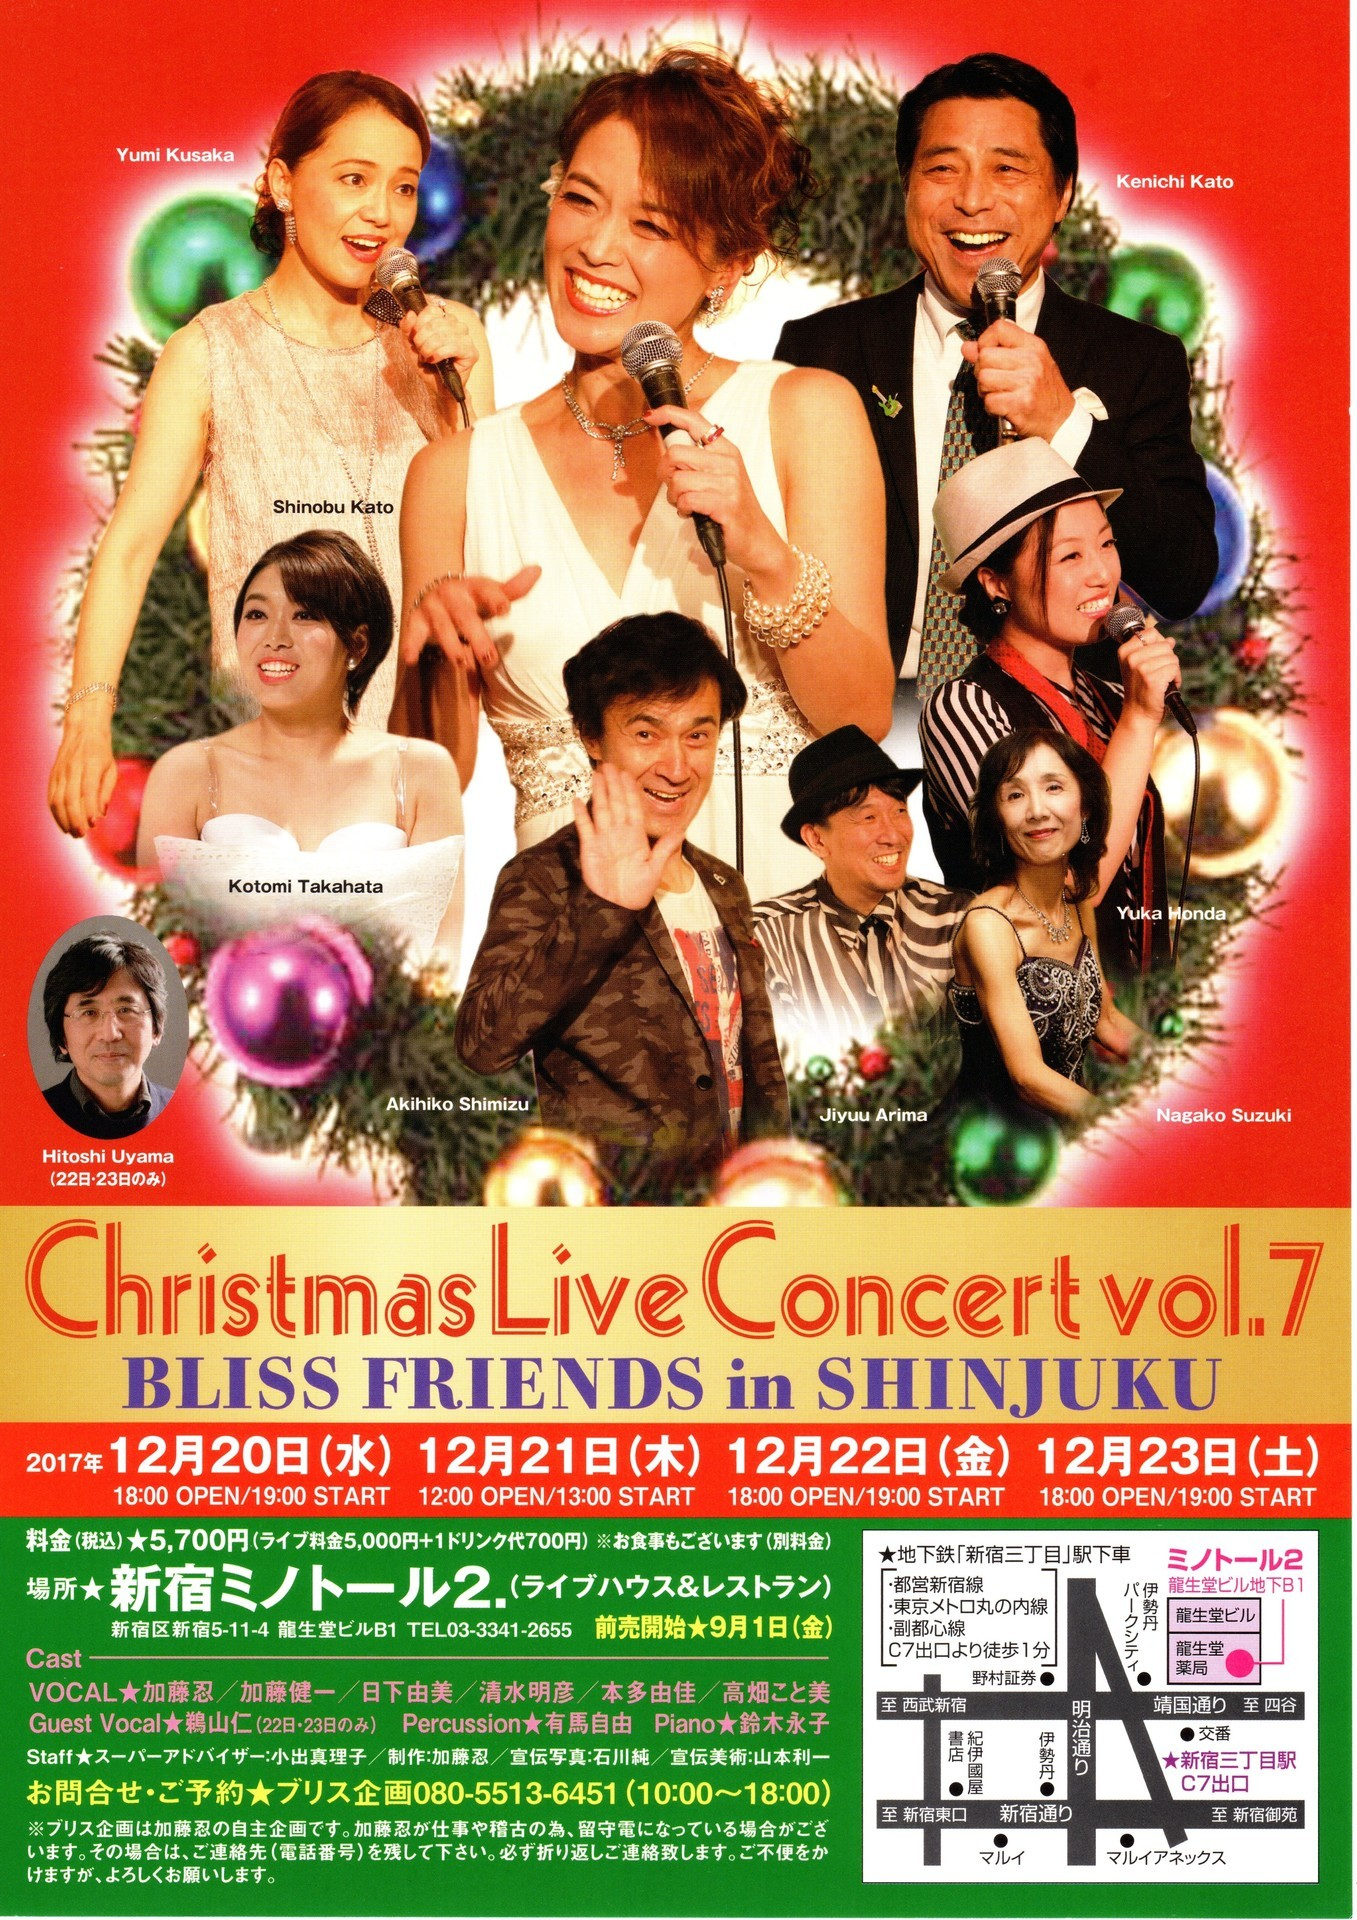 Christmas Live Concert vol.7  BLISS FRIENDS in SHINJUKU.jpg